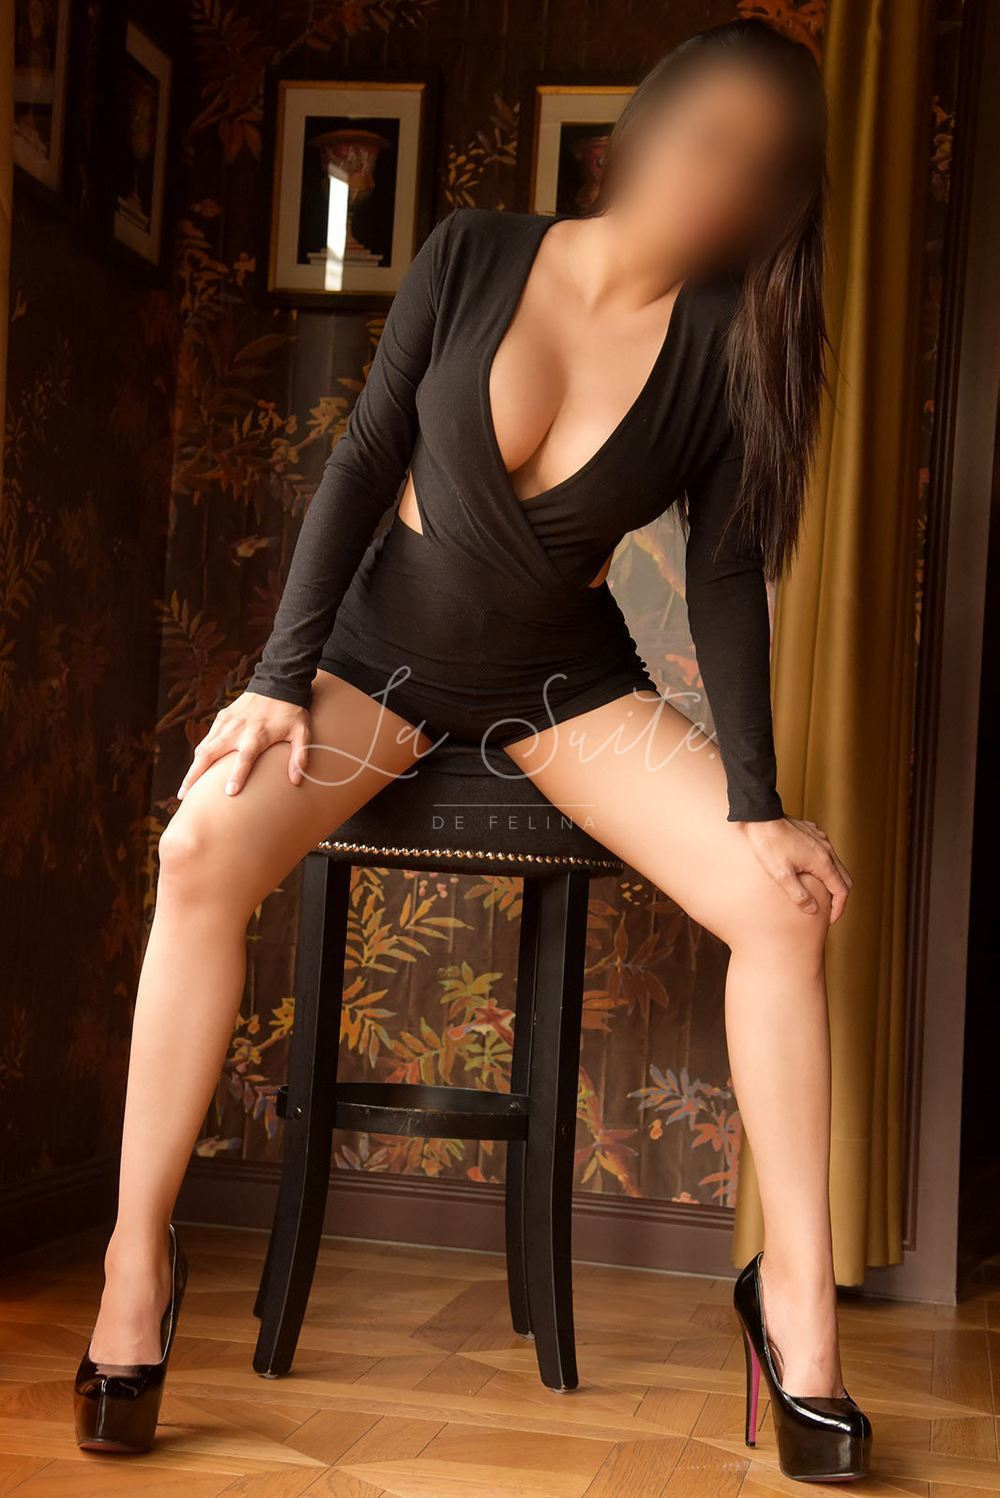 Isabella: VIP Latina escort in Barcelona for rimming, wearing a black dress